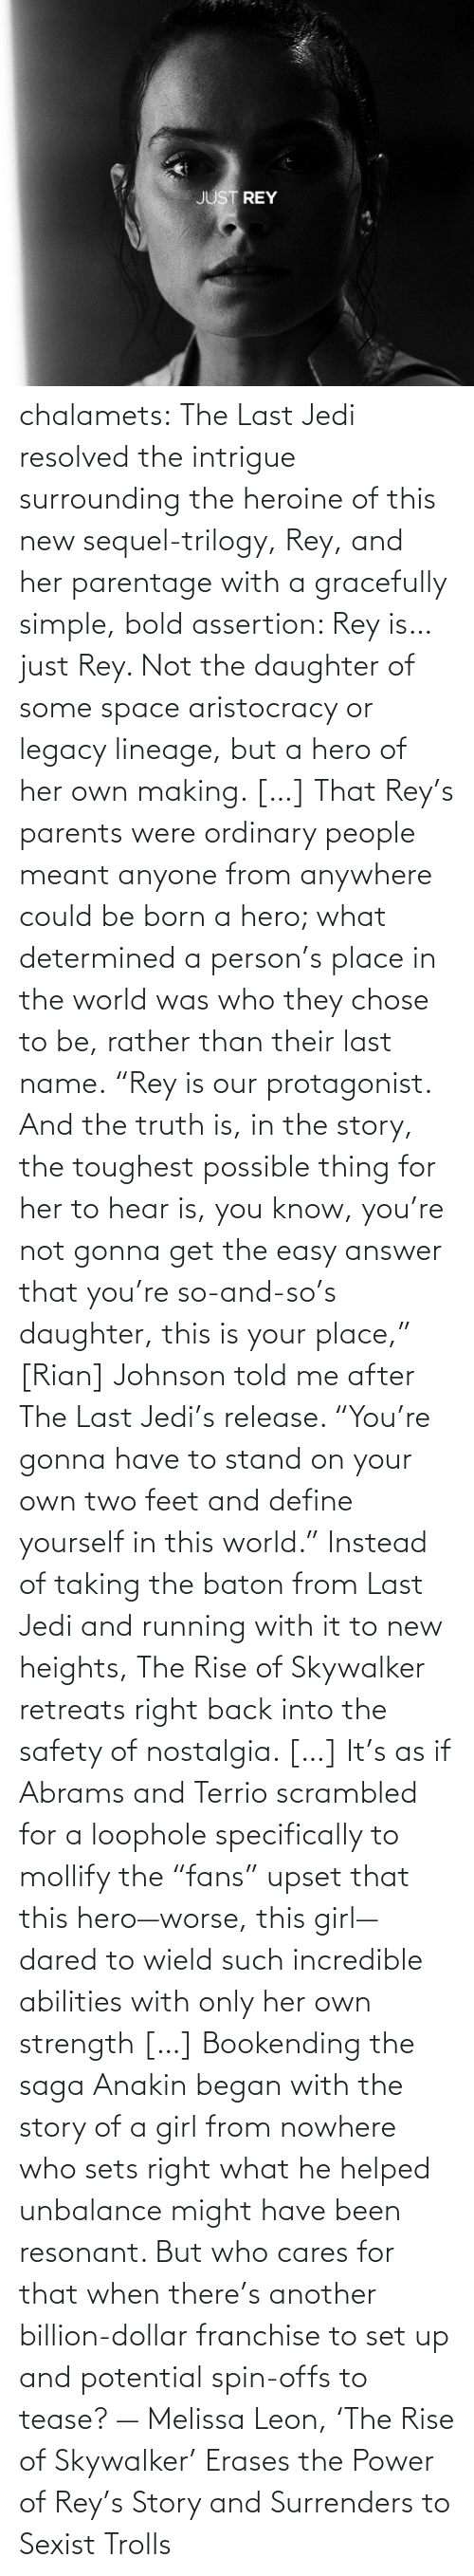 "born: chalamets:  The Last Jedi resolved the intrigue surrounding the heroine of this new sequel-trilogy, Rey, and her parentage with a gracefully simple, bold assertion: Rey is… just Rey. Not the daughter of some space aristocracy or legacy lineage, but a hero of her own making. […] That Rey's parents were ordinary people meant anyone from anywhere could be born a hero; what determined a person's place in the world was who they chose to be, rather than their last name. ""Rey is our protagonist. And the truth is, in the story, the toughest possible thing for her to hear is, you know, you're not gonna get the easy answer that you're so-and-so's daughter, this is your place,"" [Rian] Johnson told me after The Last Jedi's release. ""You're gonna have to stand on your own two feet and define yourself in this world."" Instead of taking the baton from Last Jedi and running with it to new heights, The Rise of Skywalker retreats right back into the safety of nostalgia. […] It's as if Abrams and Terrio scrambled for a loophole specifically to mollify the ""fans"" upset that this hero—worse, this girl—dared to wield such incredible abilities with only her own strength […] Bookending the saga Anakin began with the story of a girl from nowhere who sets right what he helped unbalance might have been resonant. But who cares for that when there's another billion-dollar franchise to set up and potential spin-offs to tease? — Melissa Leon, 'The Rise of Skywalker' Erases the Power of Rey's Story and Surrenders to Sexist Trolls"